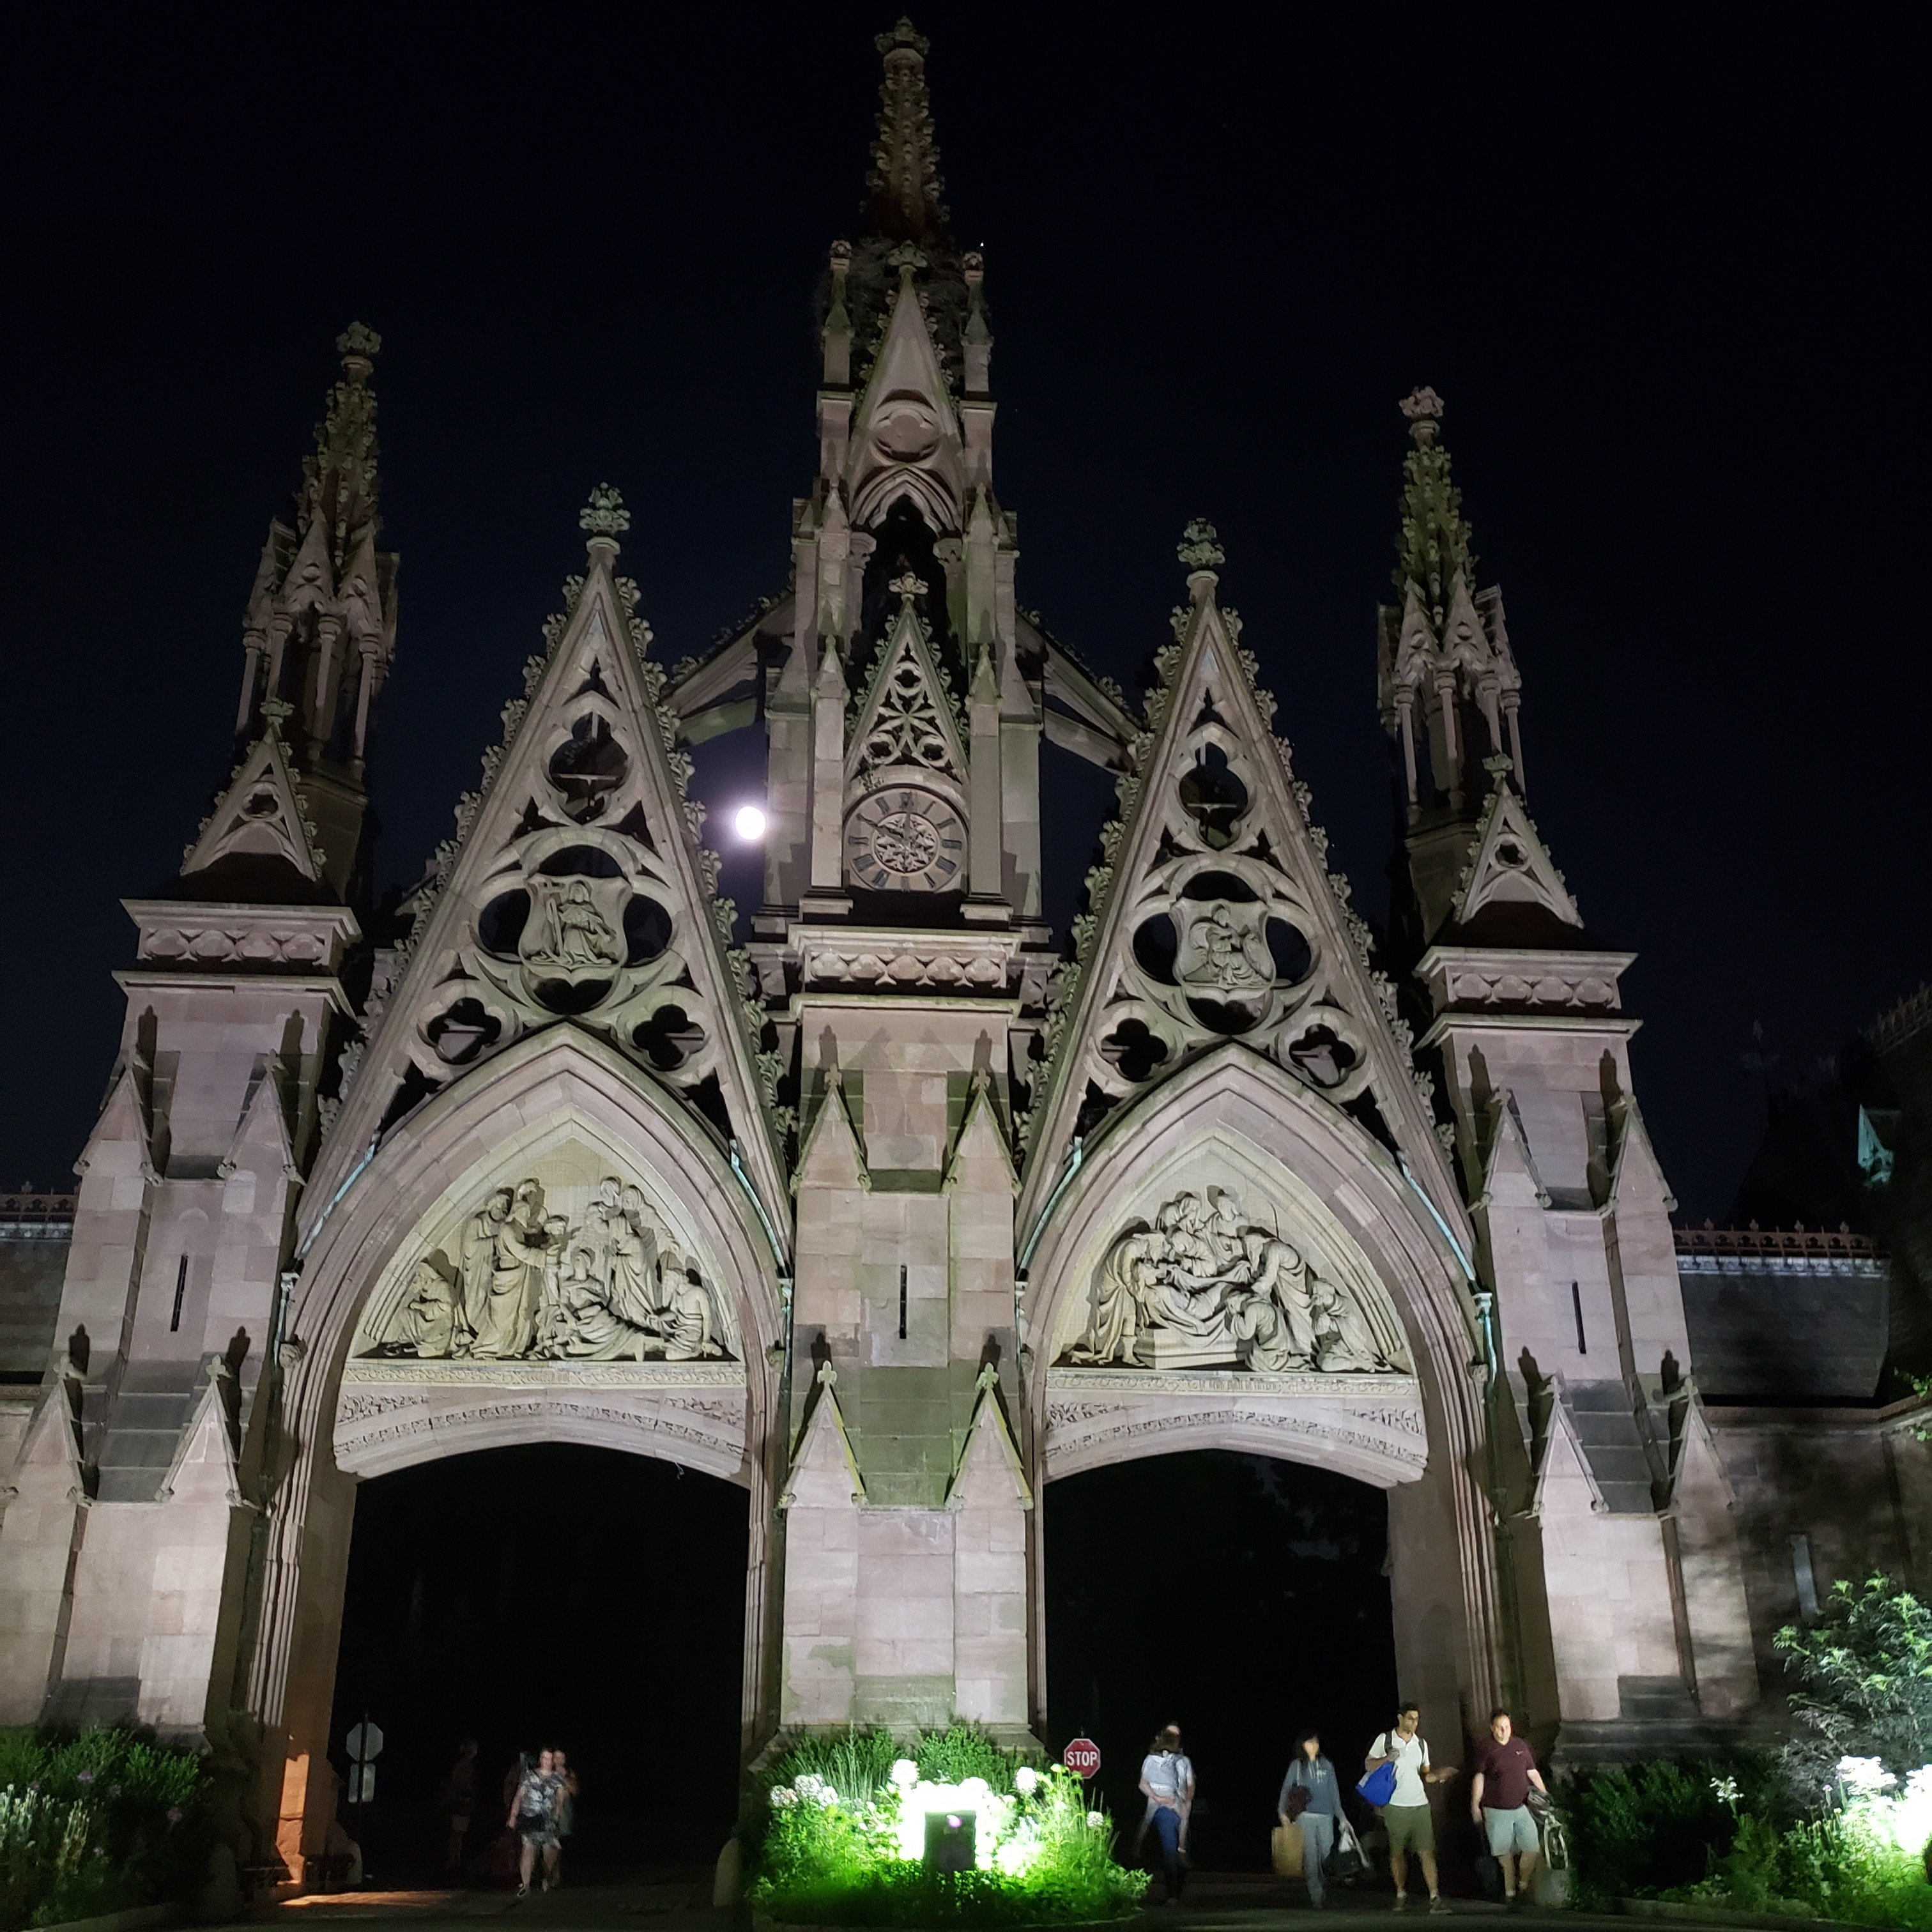 Arches at Green-Wood Cemetery at night